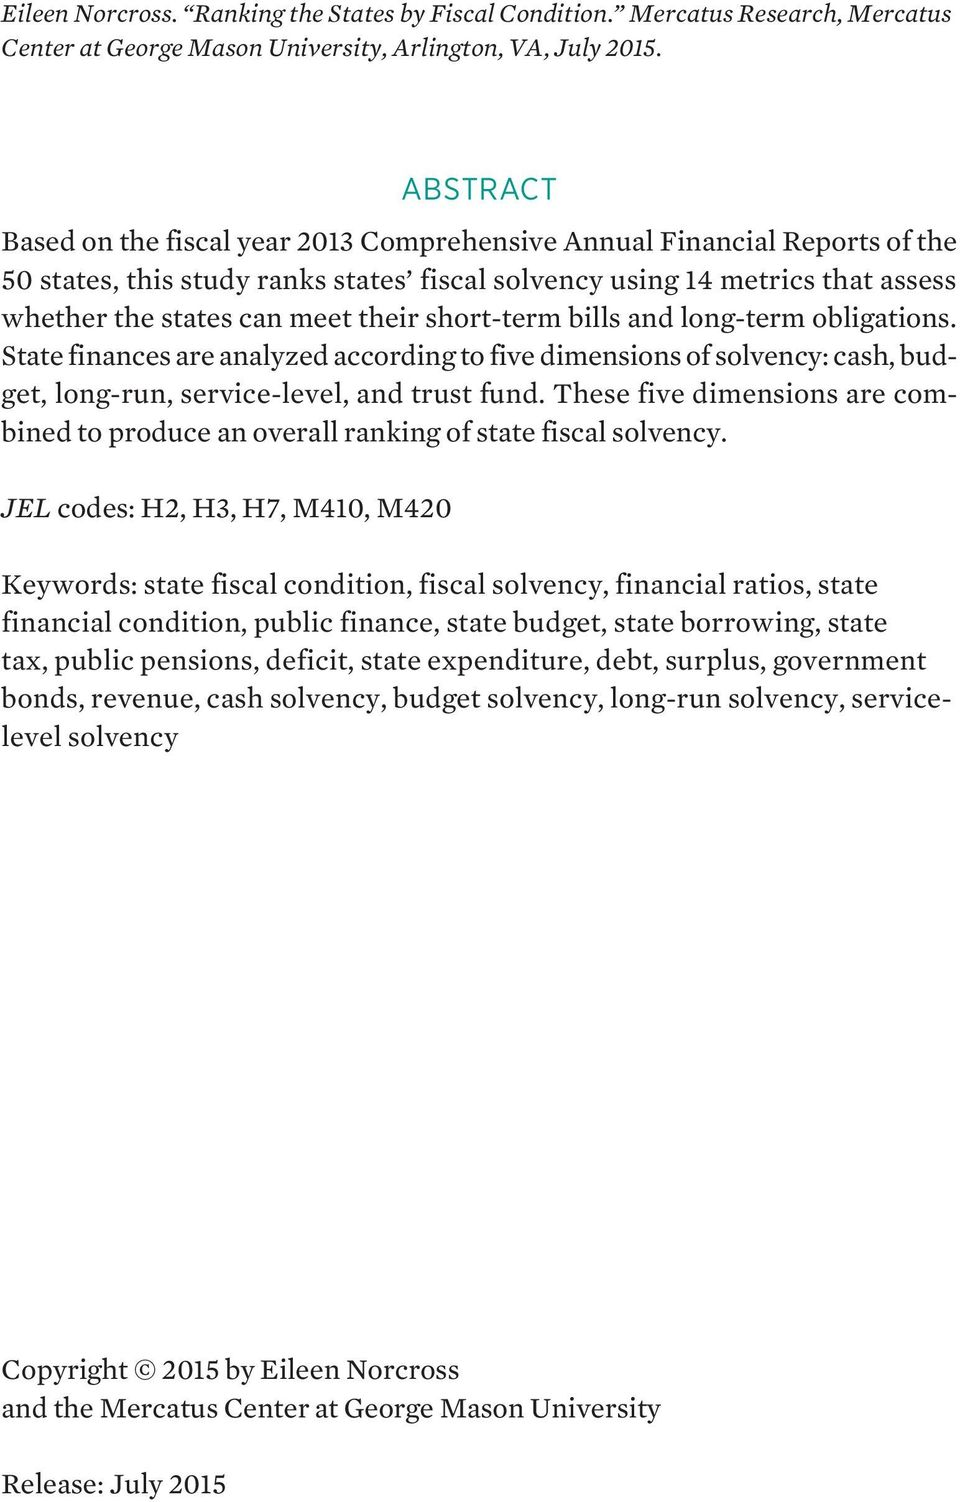 short-term bills and long-term obligations. State finances are analyzed according to five dimensions of solvency: cash, budget, long-run, service-level, and trust fund.